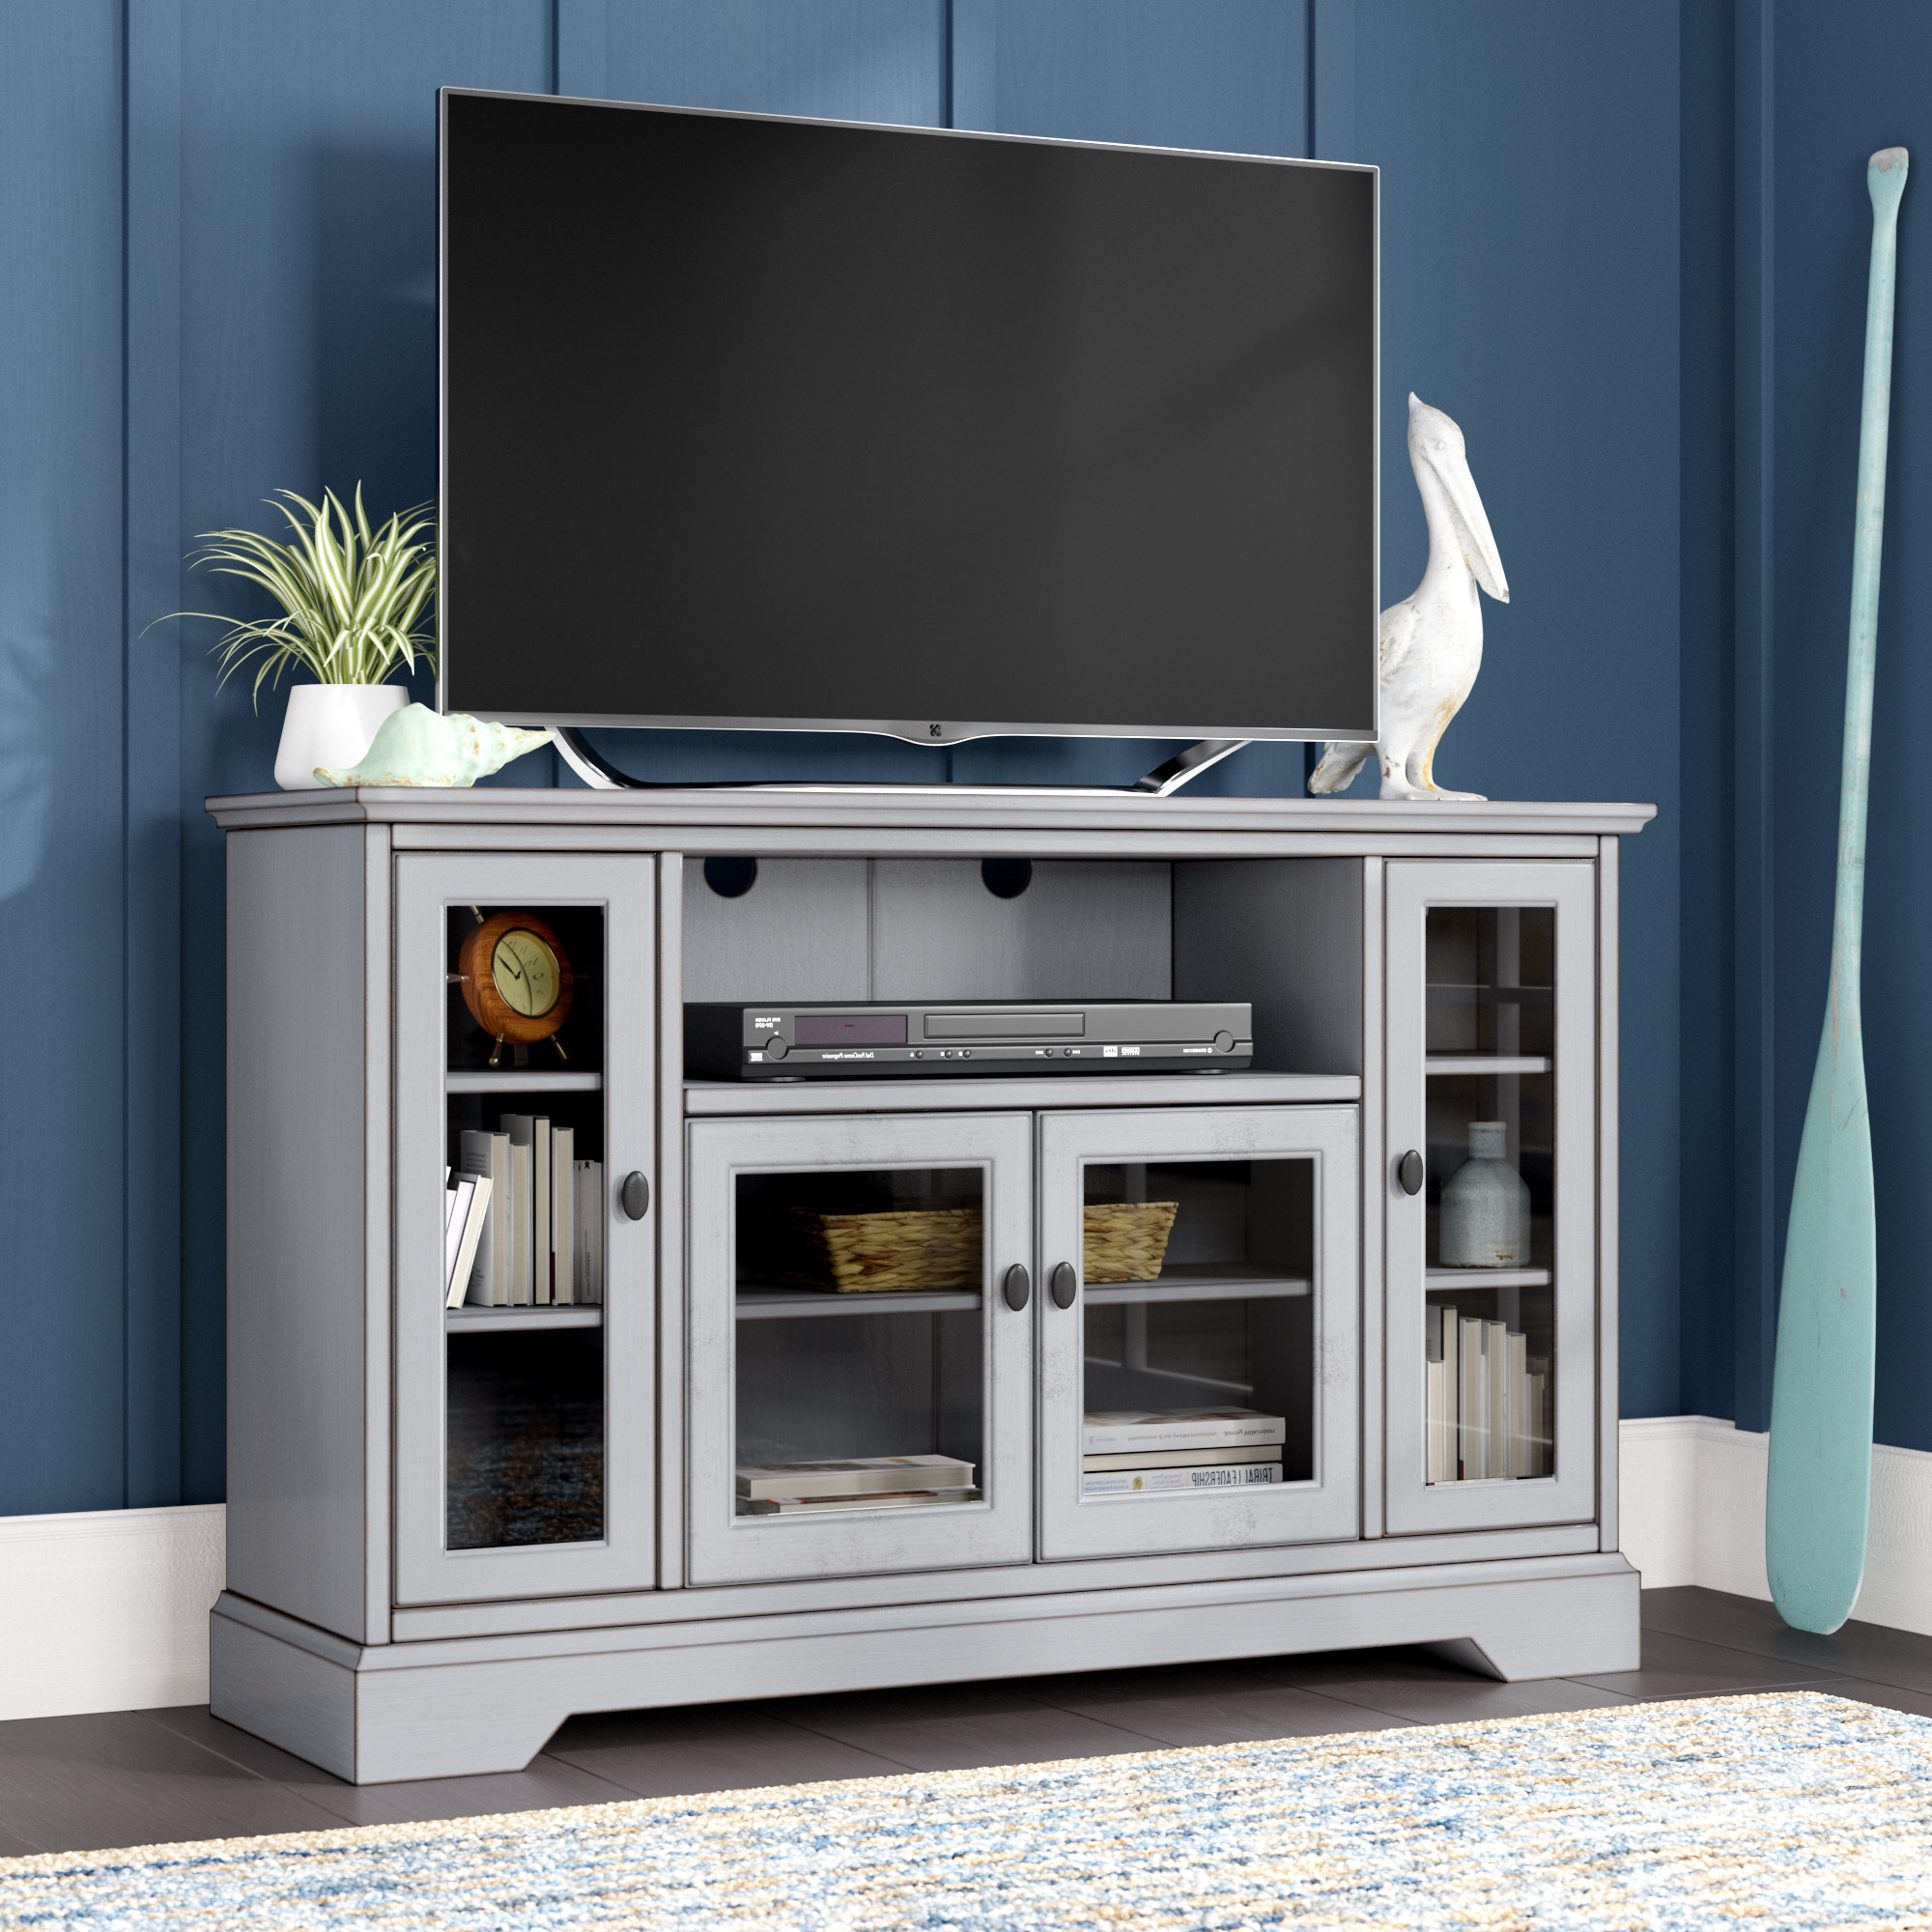 Tall Tv Stands You'll Love | Wayfair Throughout Edwin Black 64 Inch Tv Stands (Gallery 7 of 20)